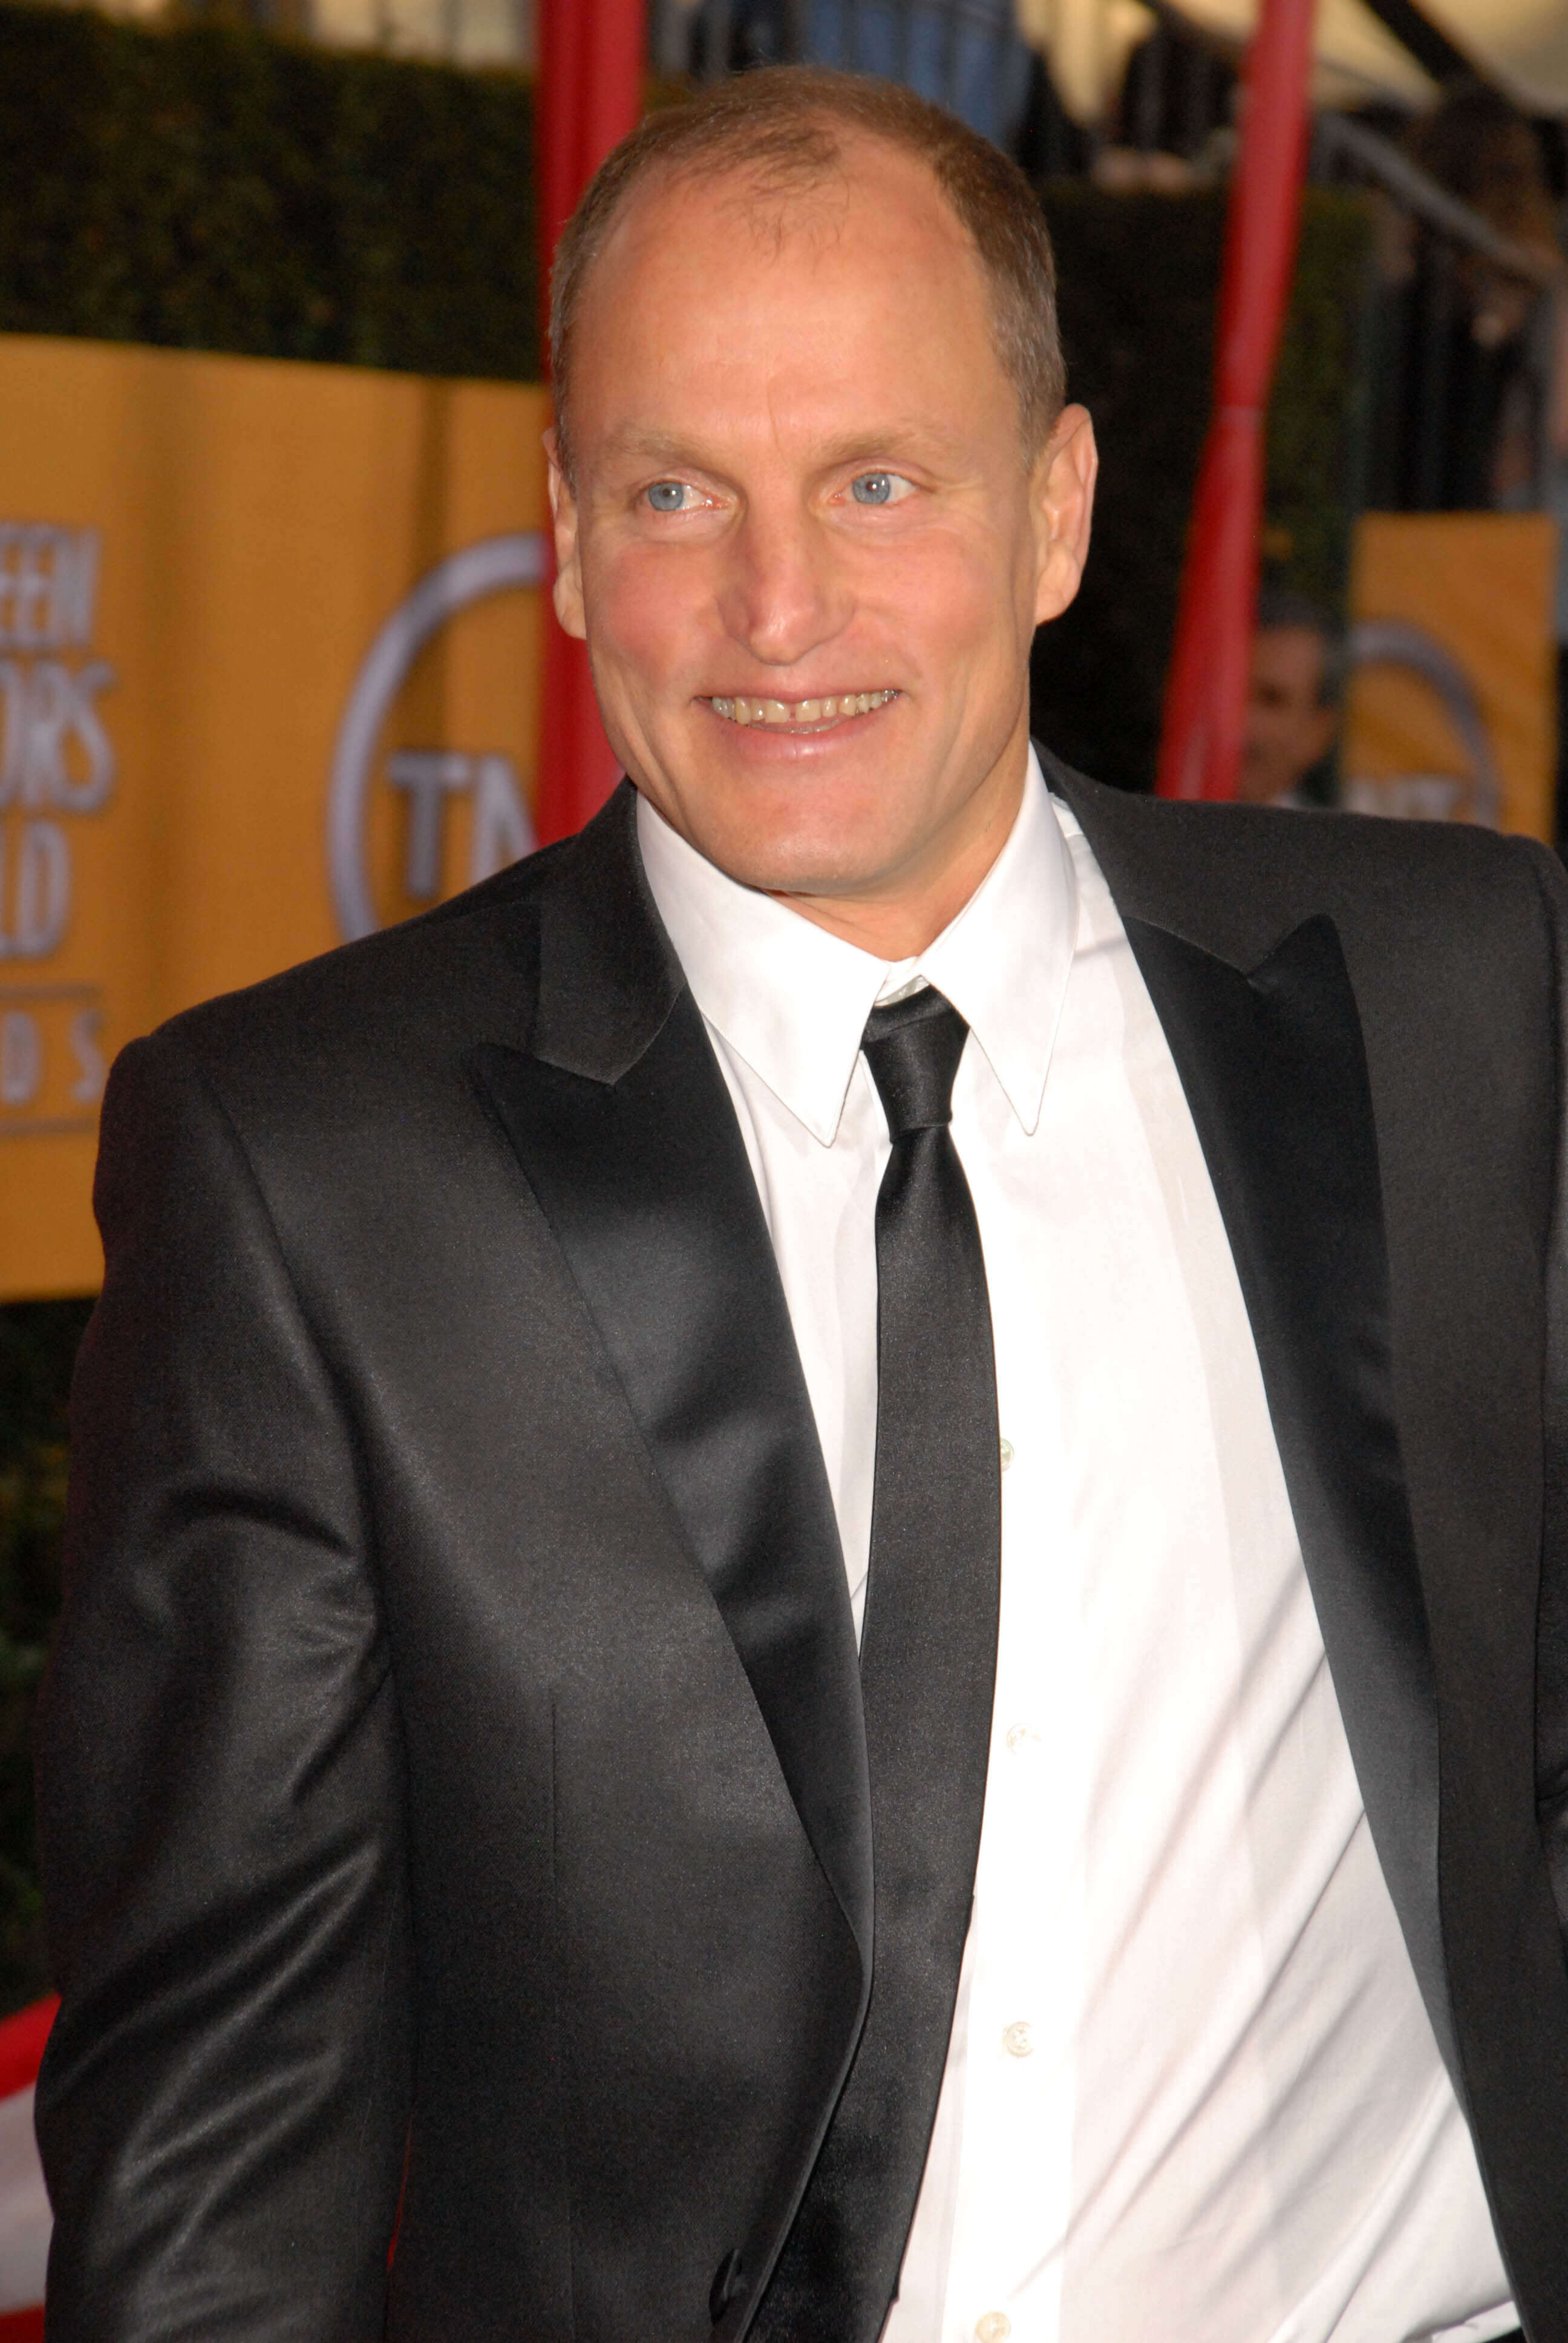 Woody Harrelson, Woody harrelson in a suite, Woody Harrelson in a tie, Woody Harrelson smiling